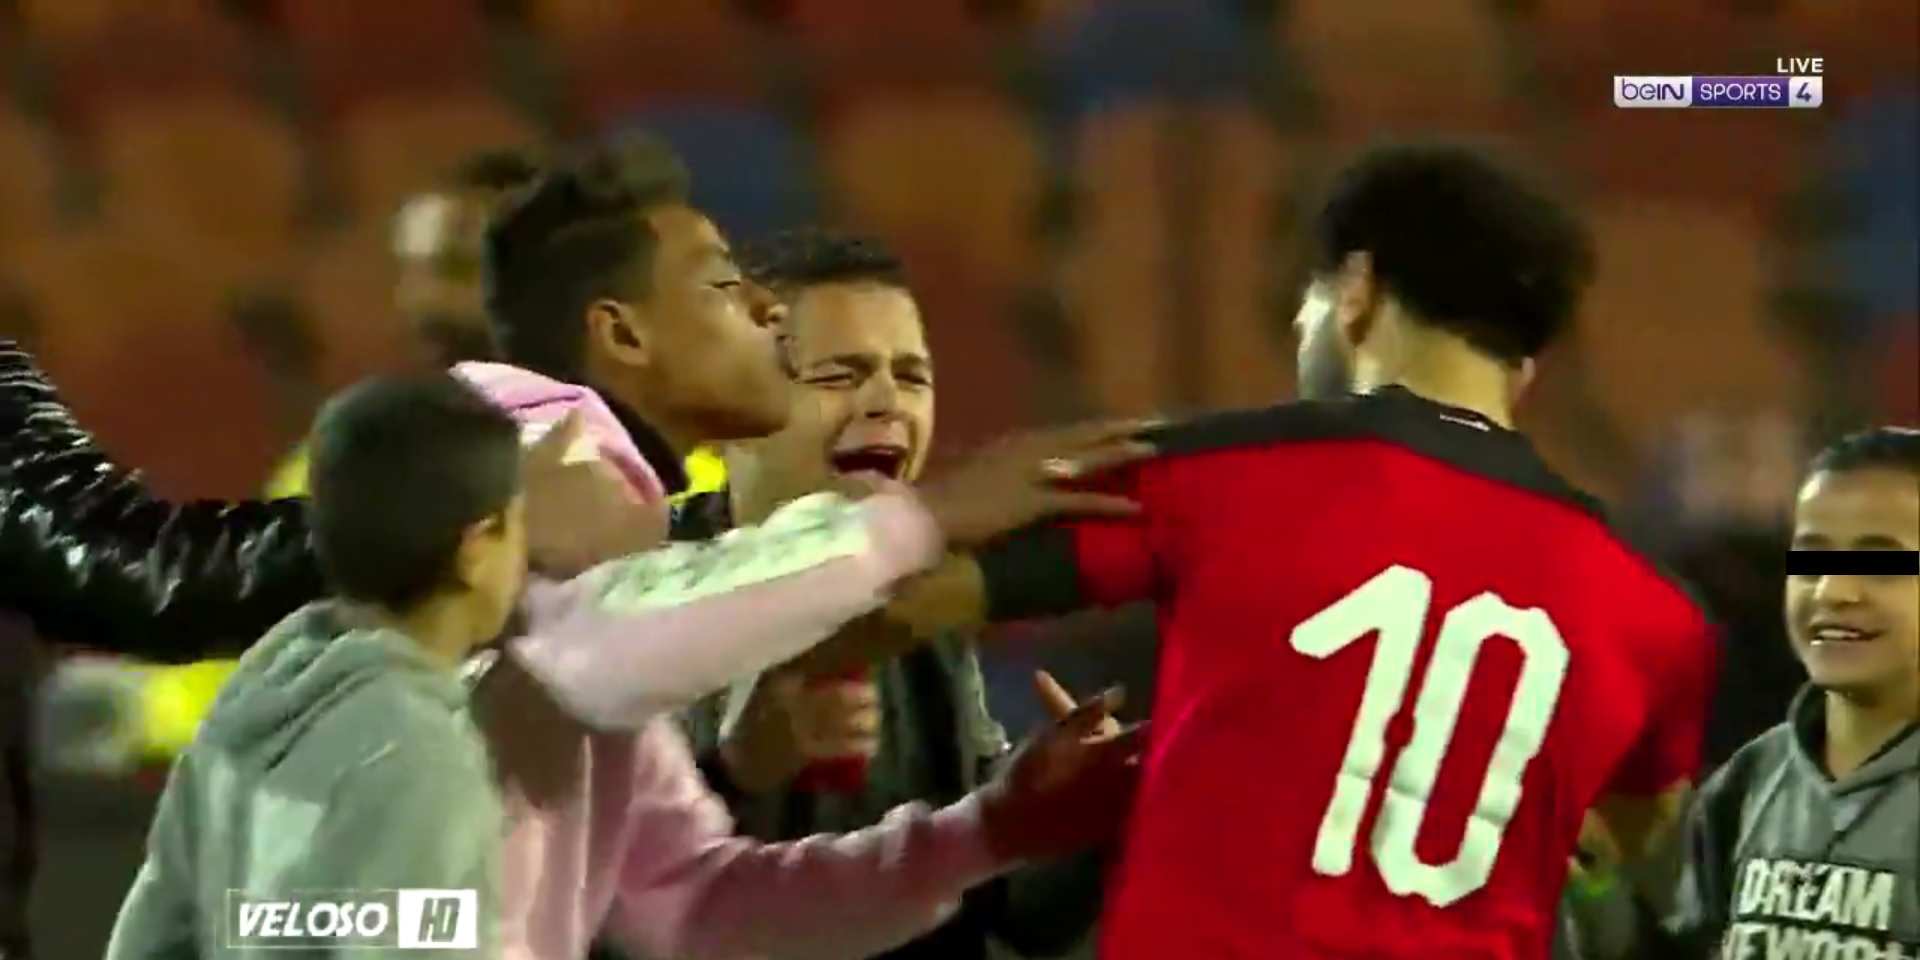 (Video) Visibly irritated Salah pushes away Egypt fans trying to kiss him & take selfies